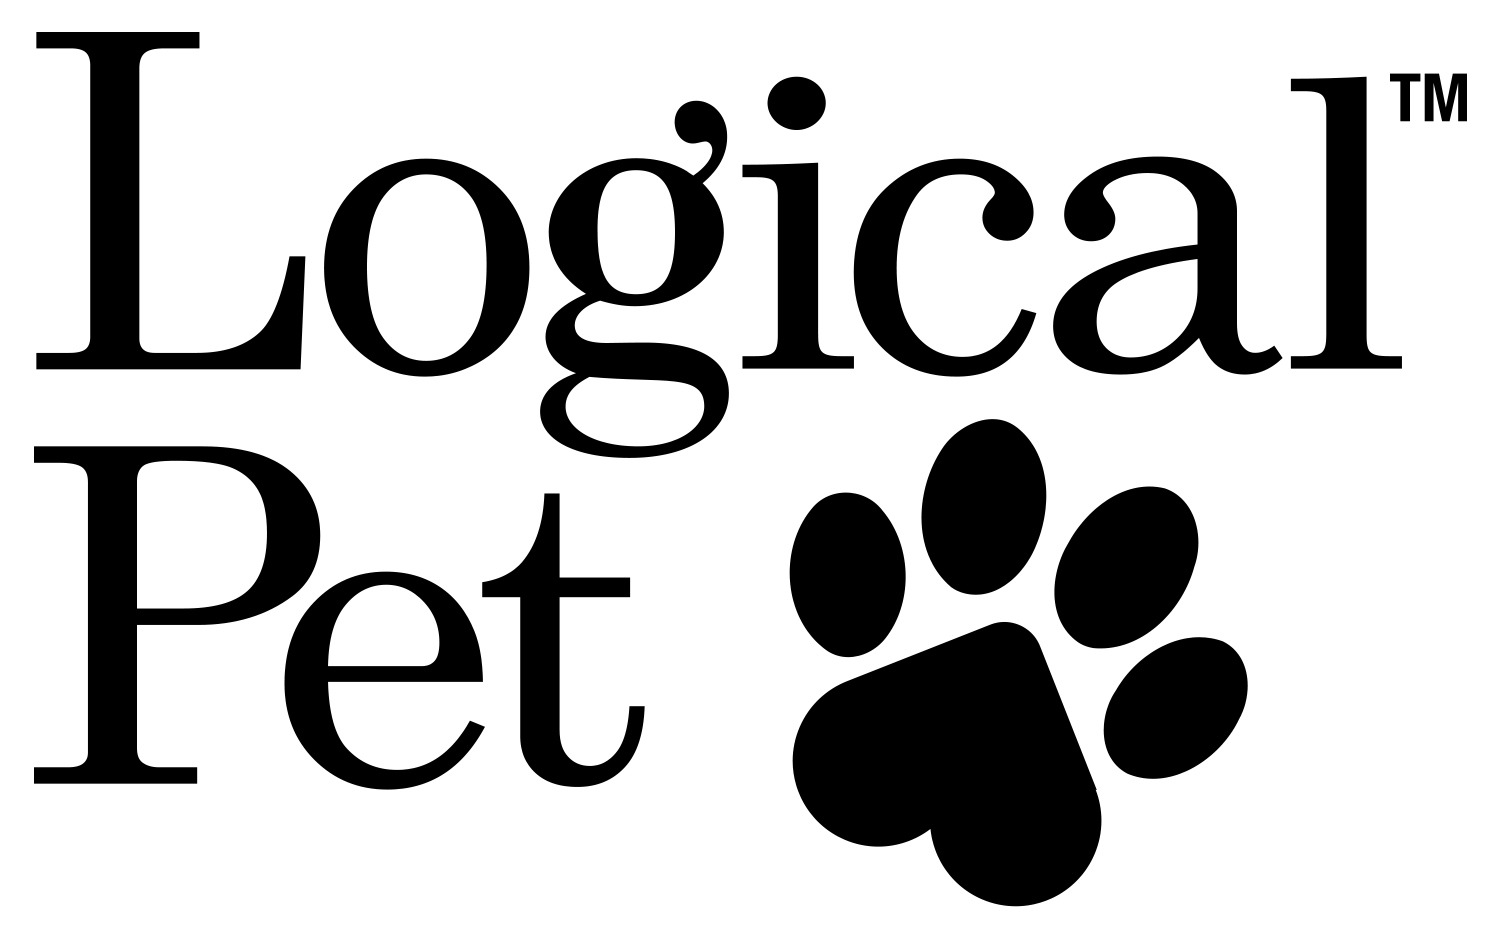 Logical pet logo